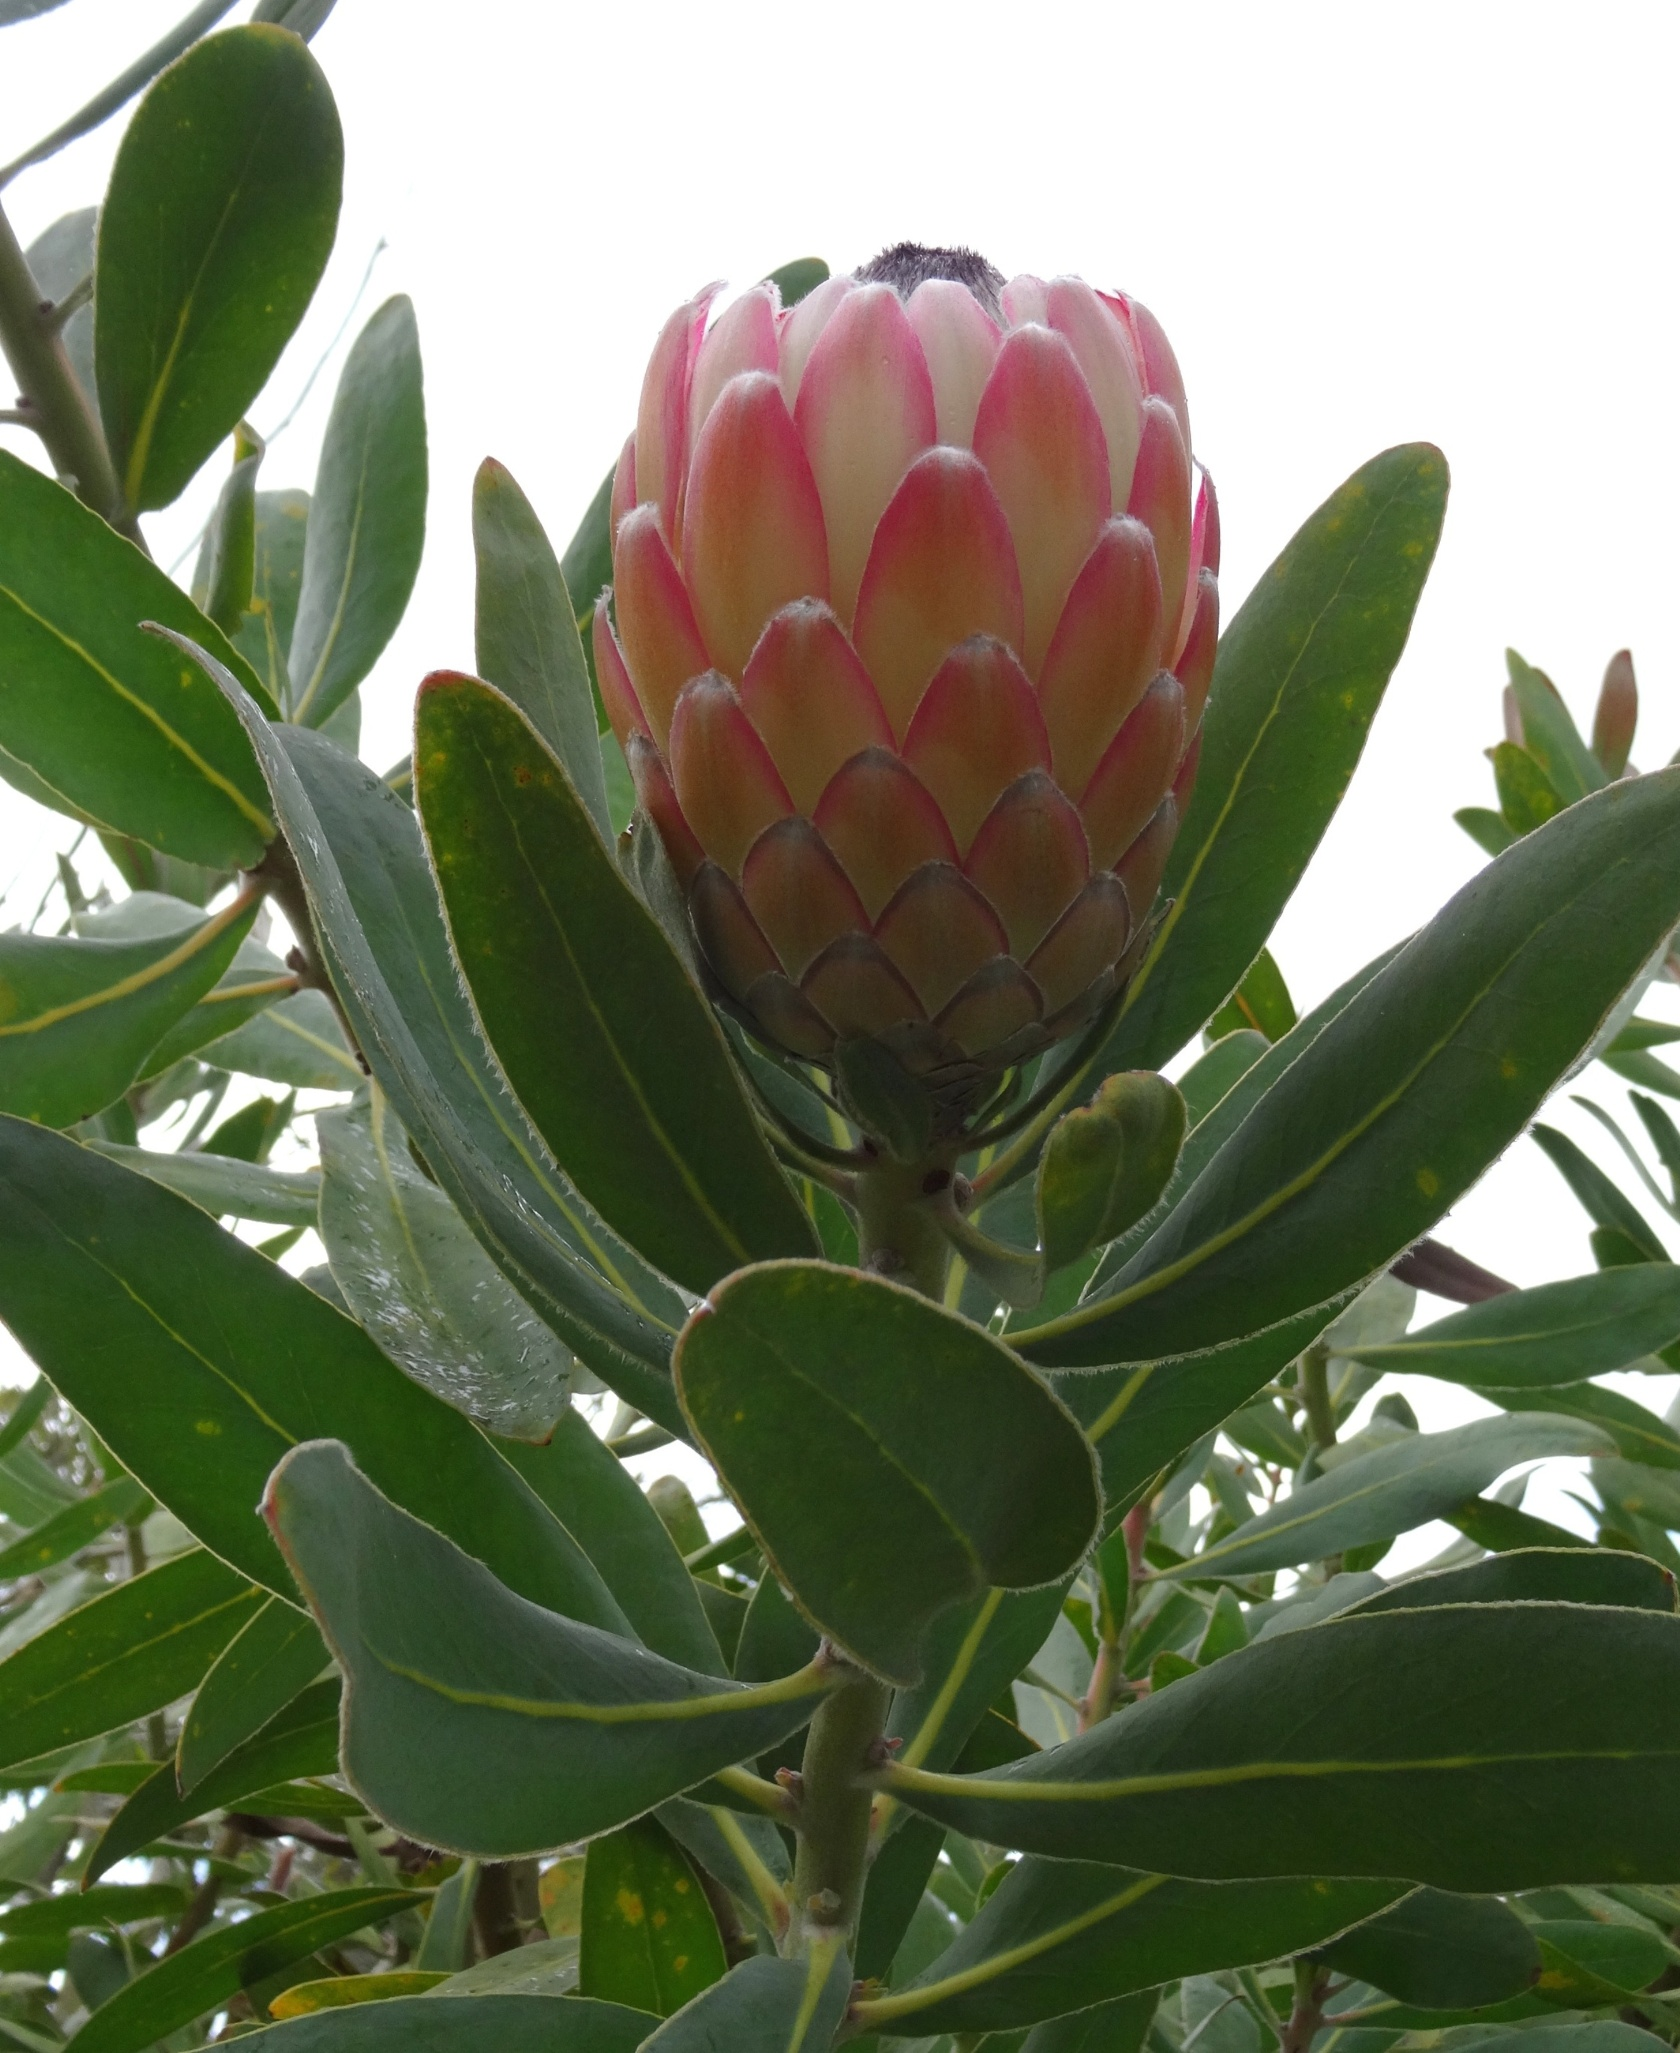 Interesting facts about Protea flowers